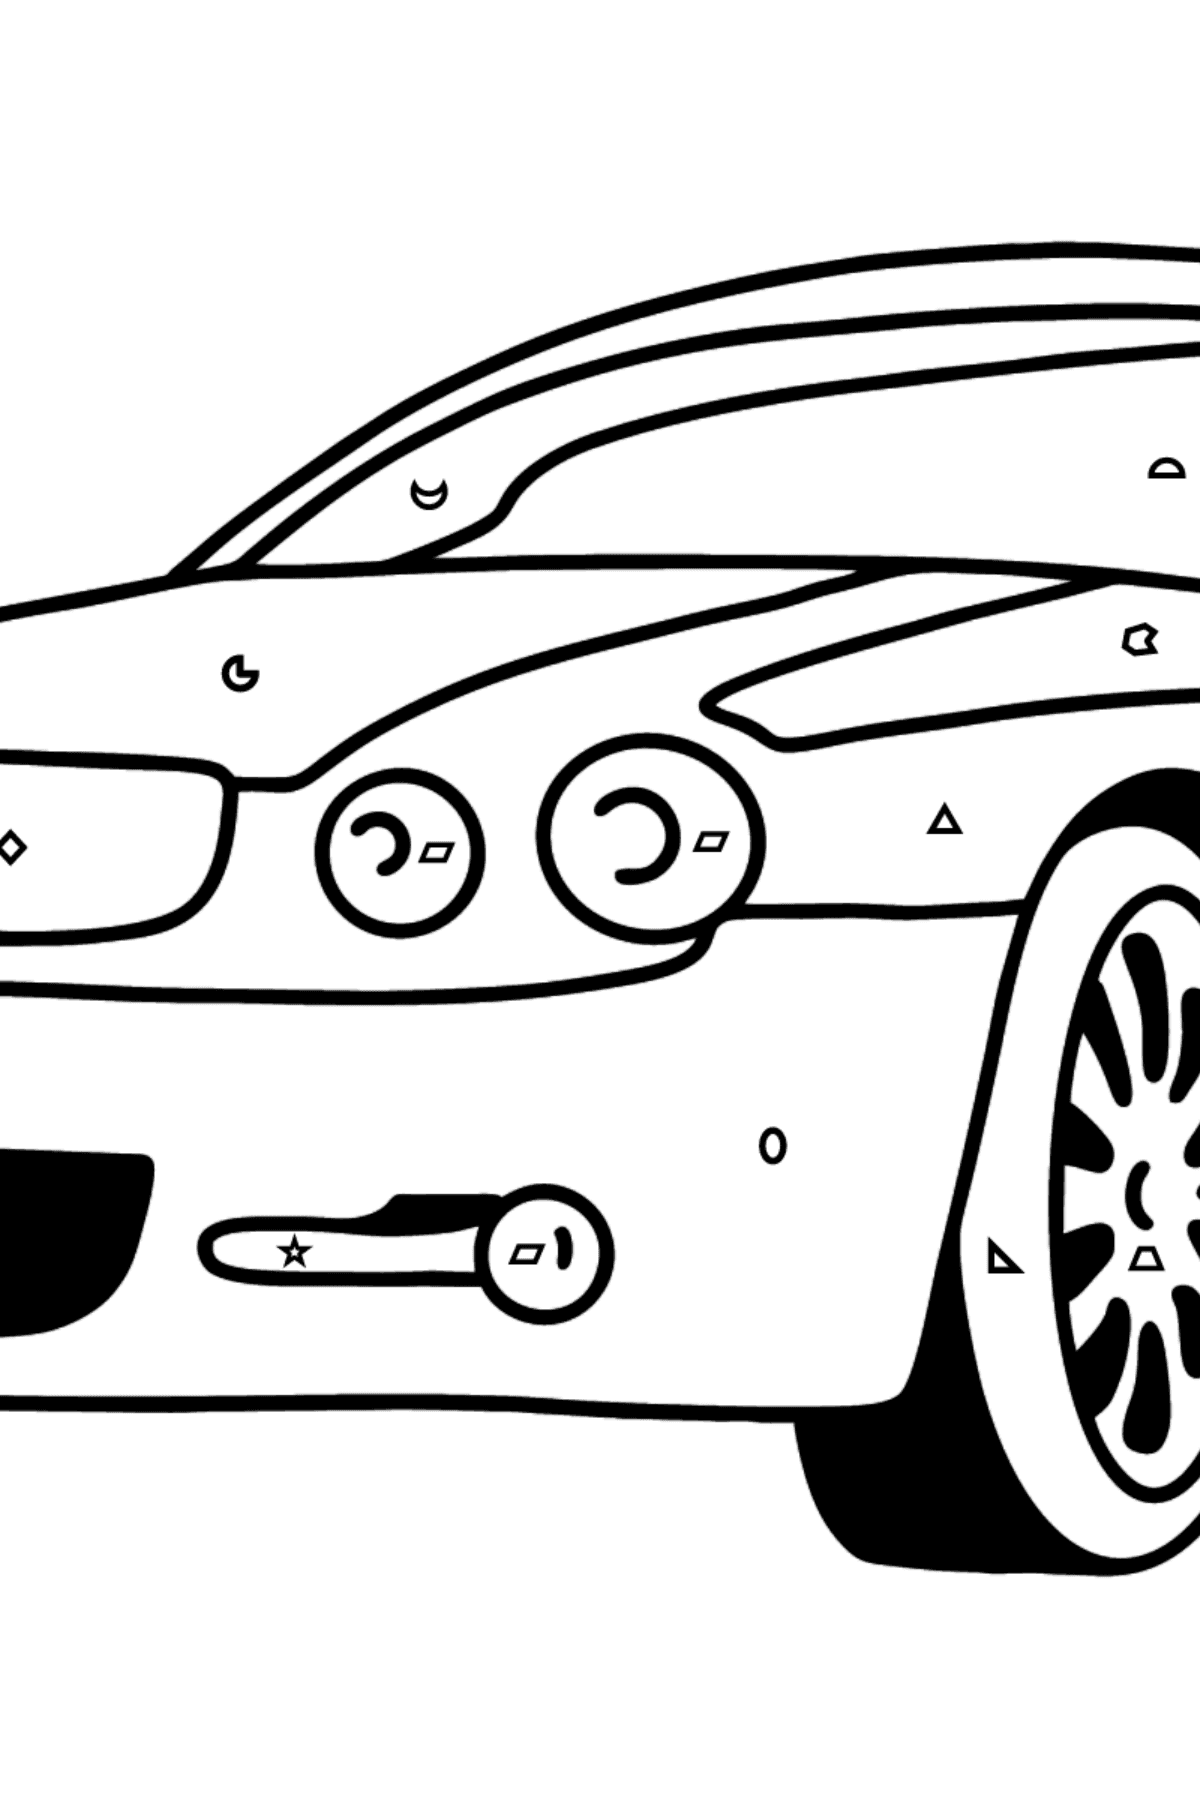 Jaguar GT coloring page - Coloring by Geometric Shapes for Kids